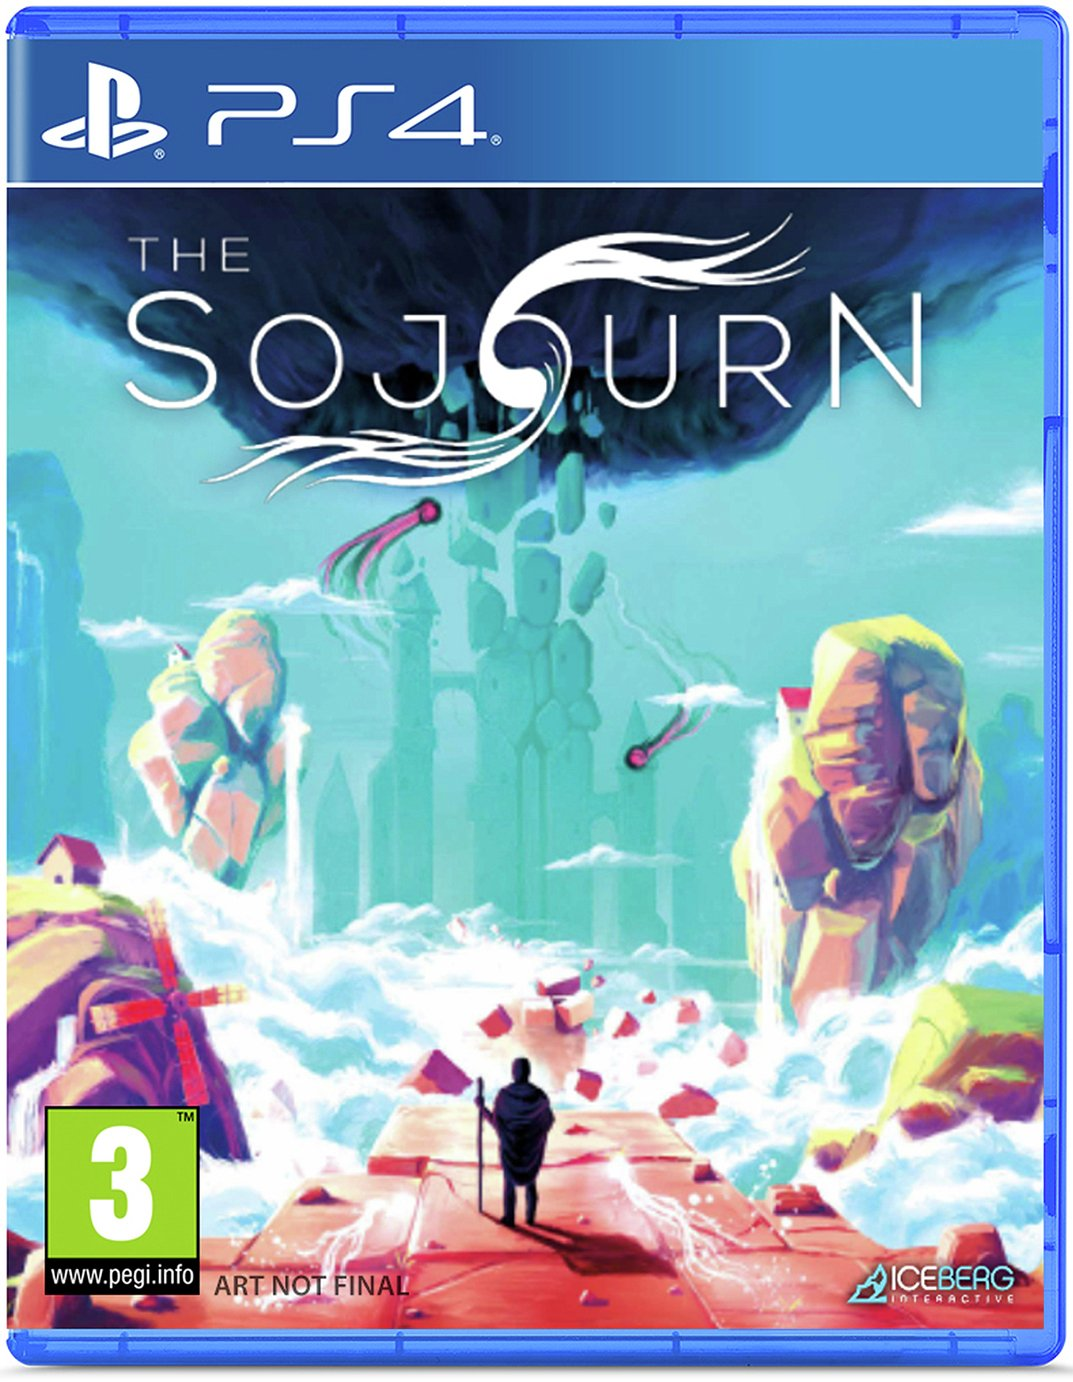 The Soujourn PS4 Game Pre-Order